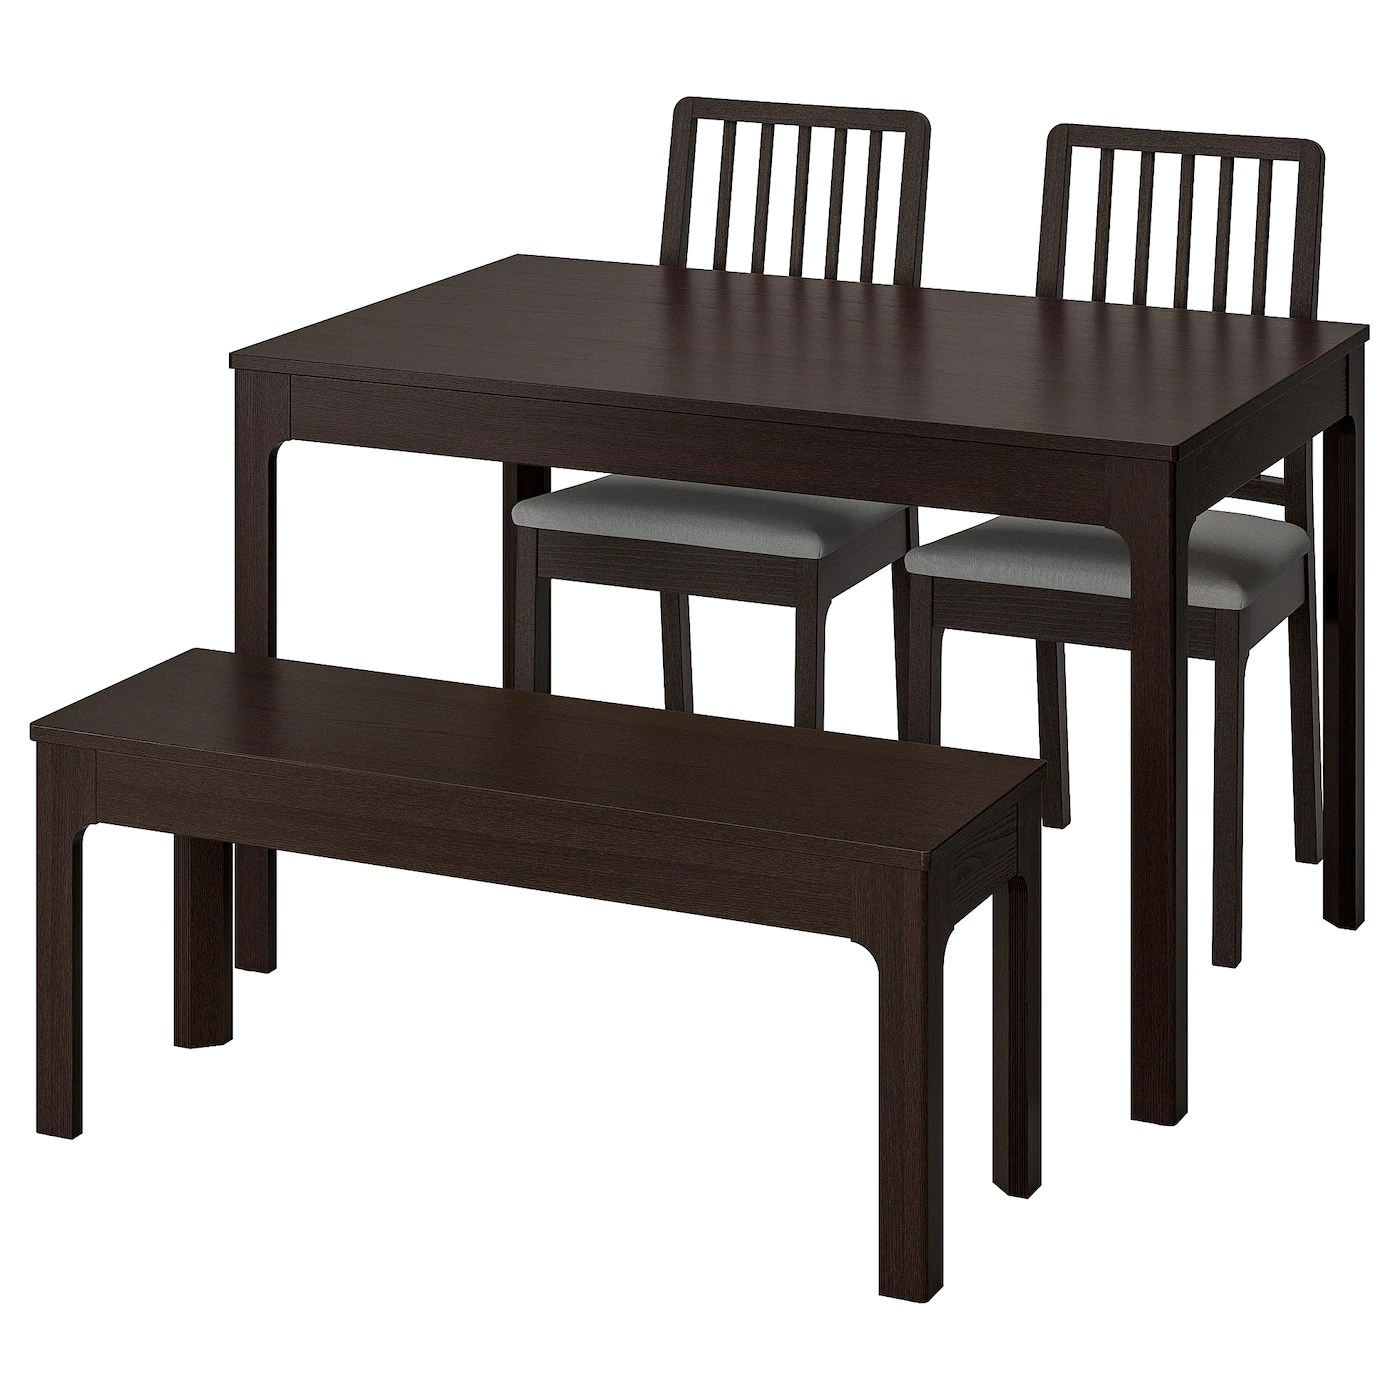 Table With Chairs 4 Seater Dining Table Chairs Ikea